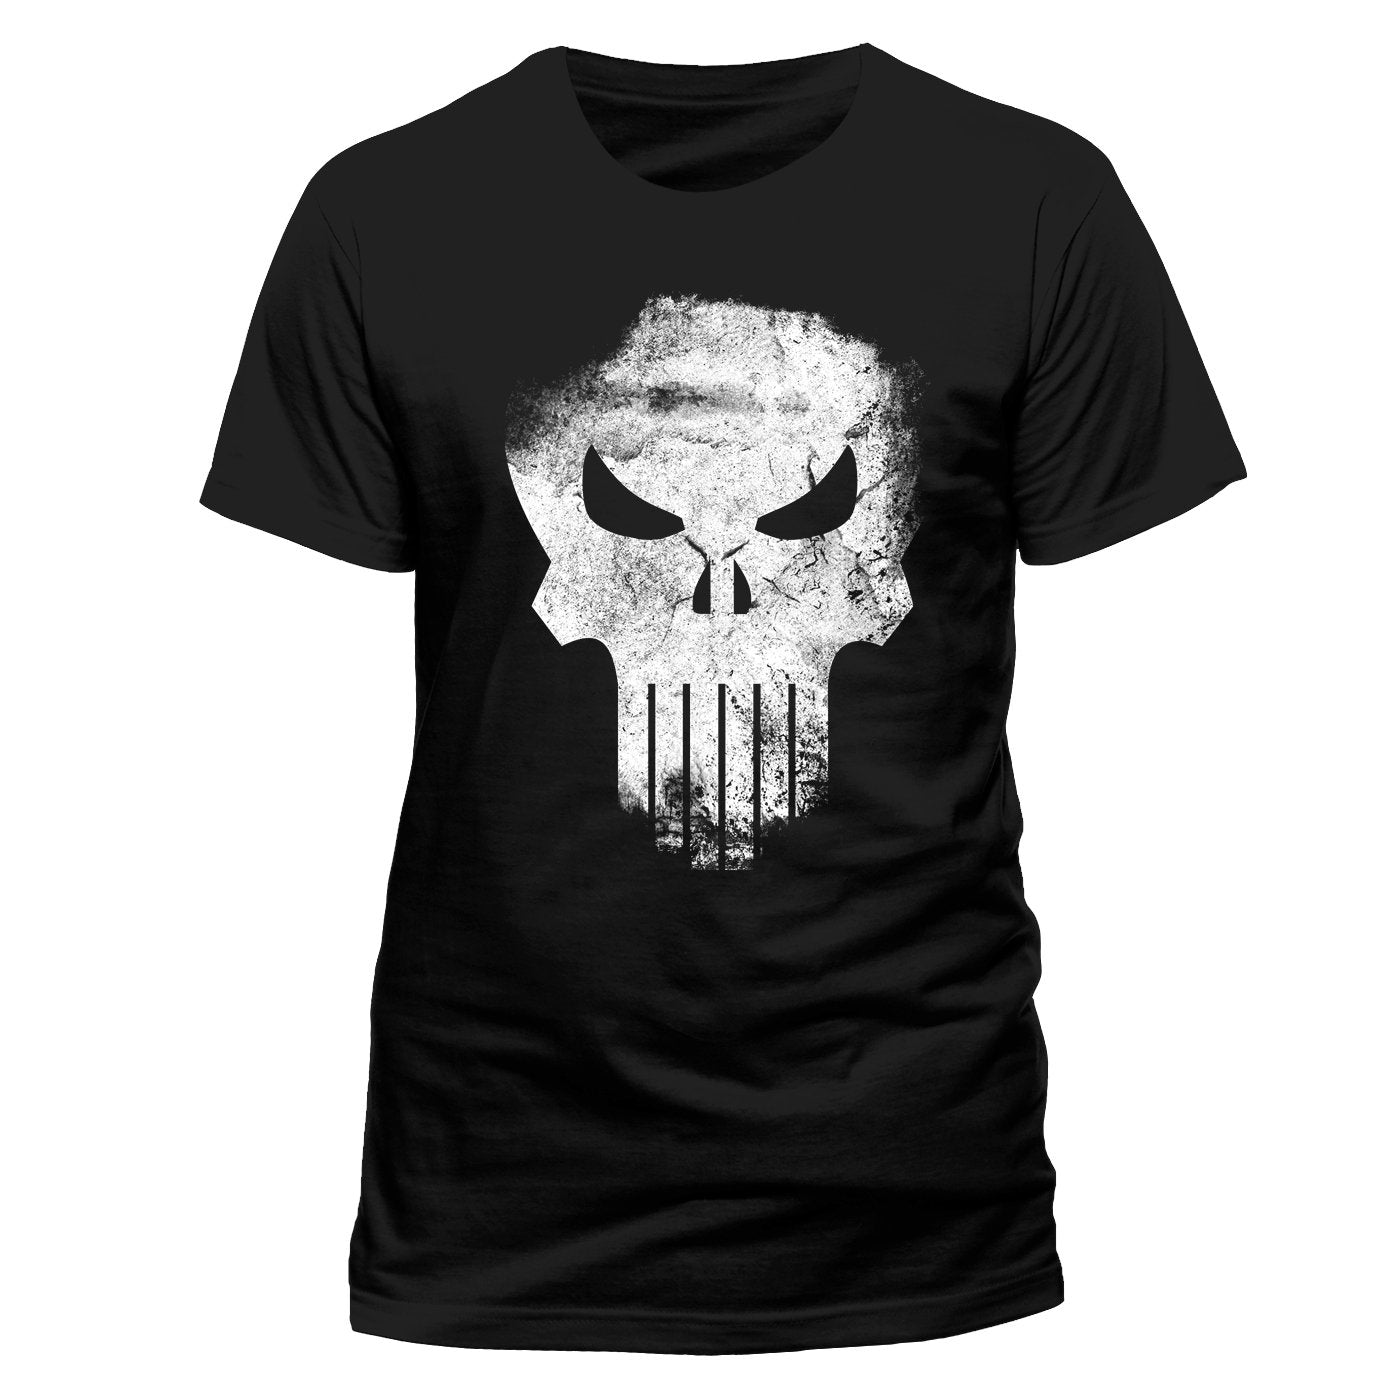 Distressed Skull T-shirt (The Punisher - Marvel)